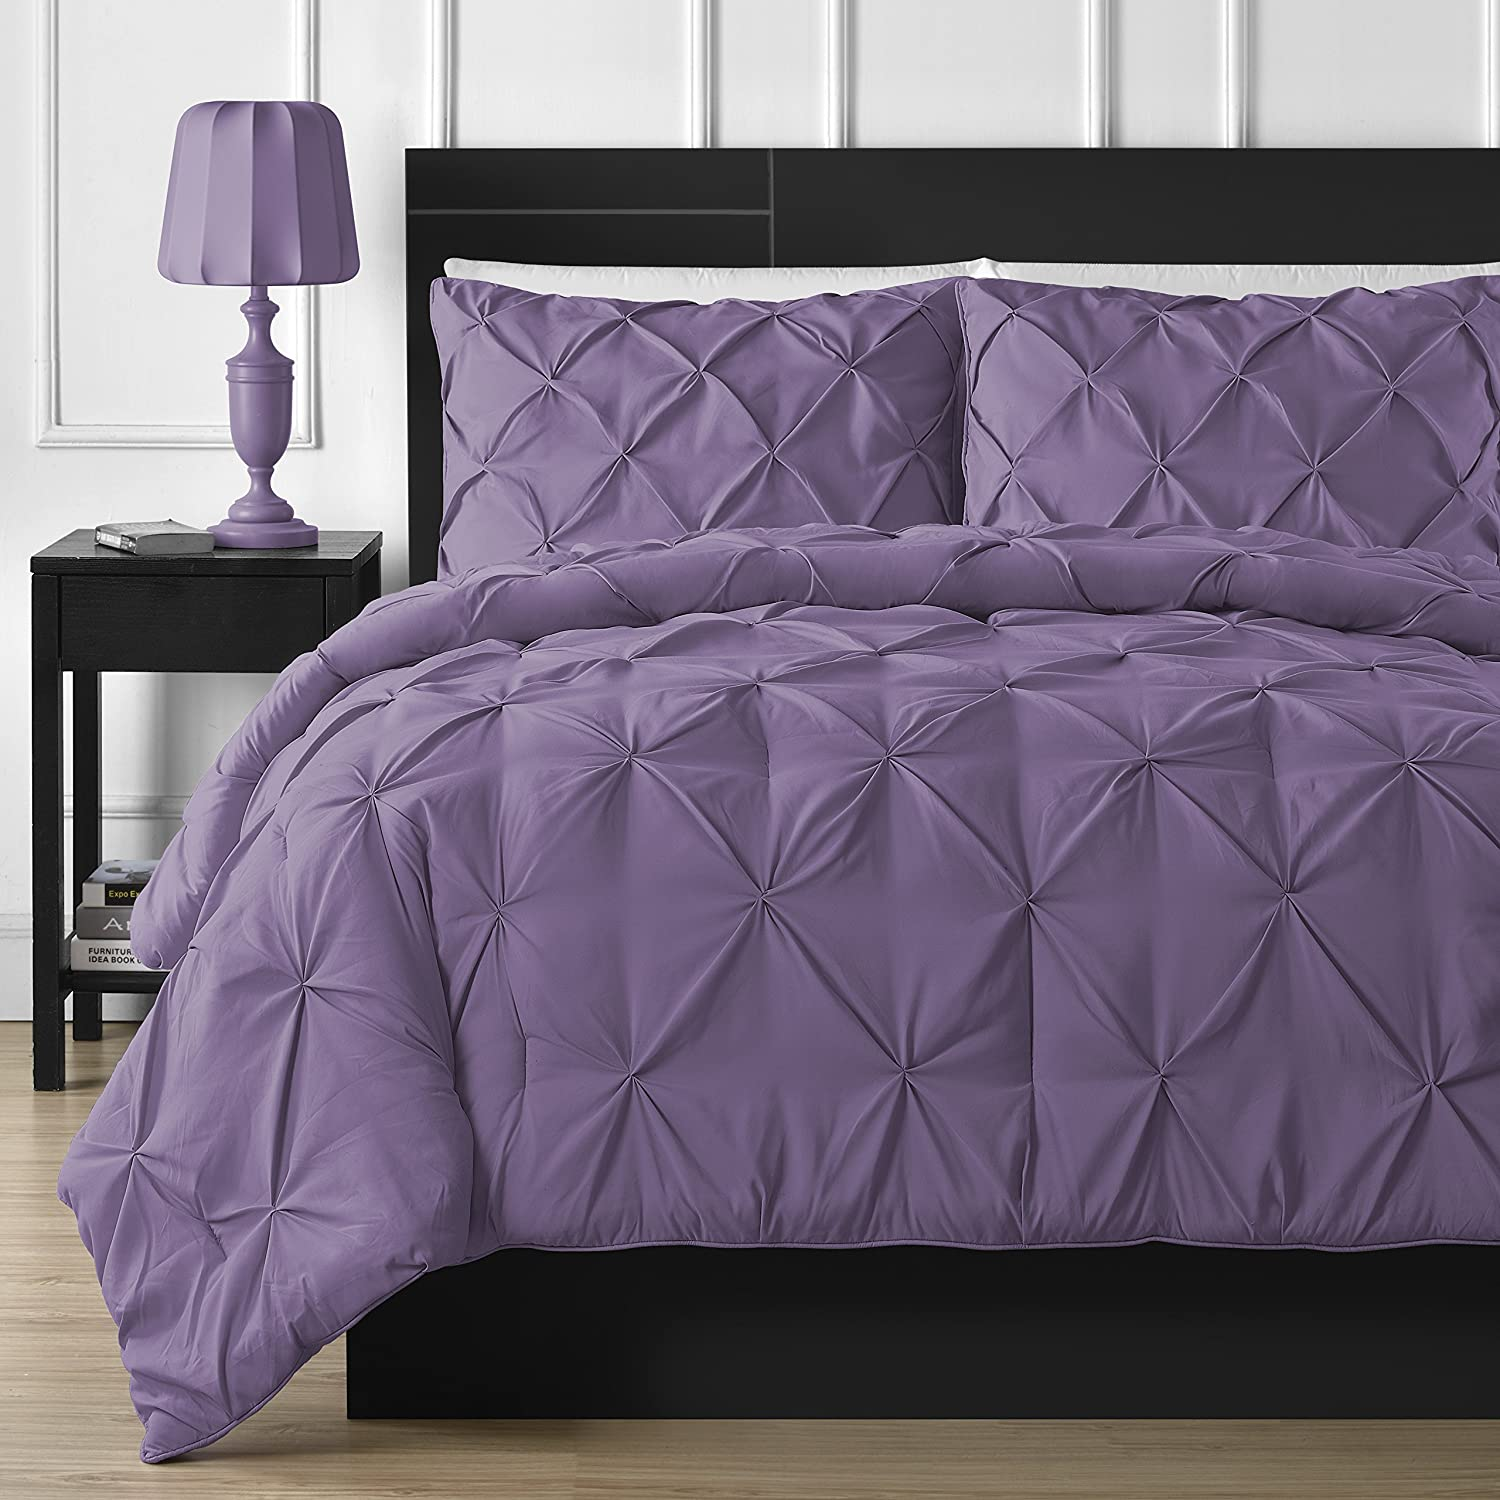 3-piece Pinch Pleat Comforter Set King, Purple